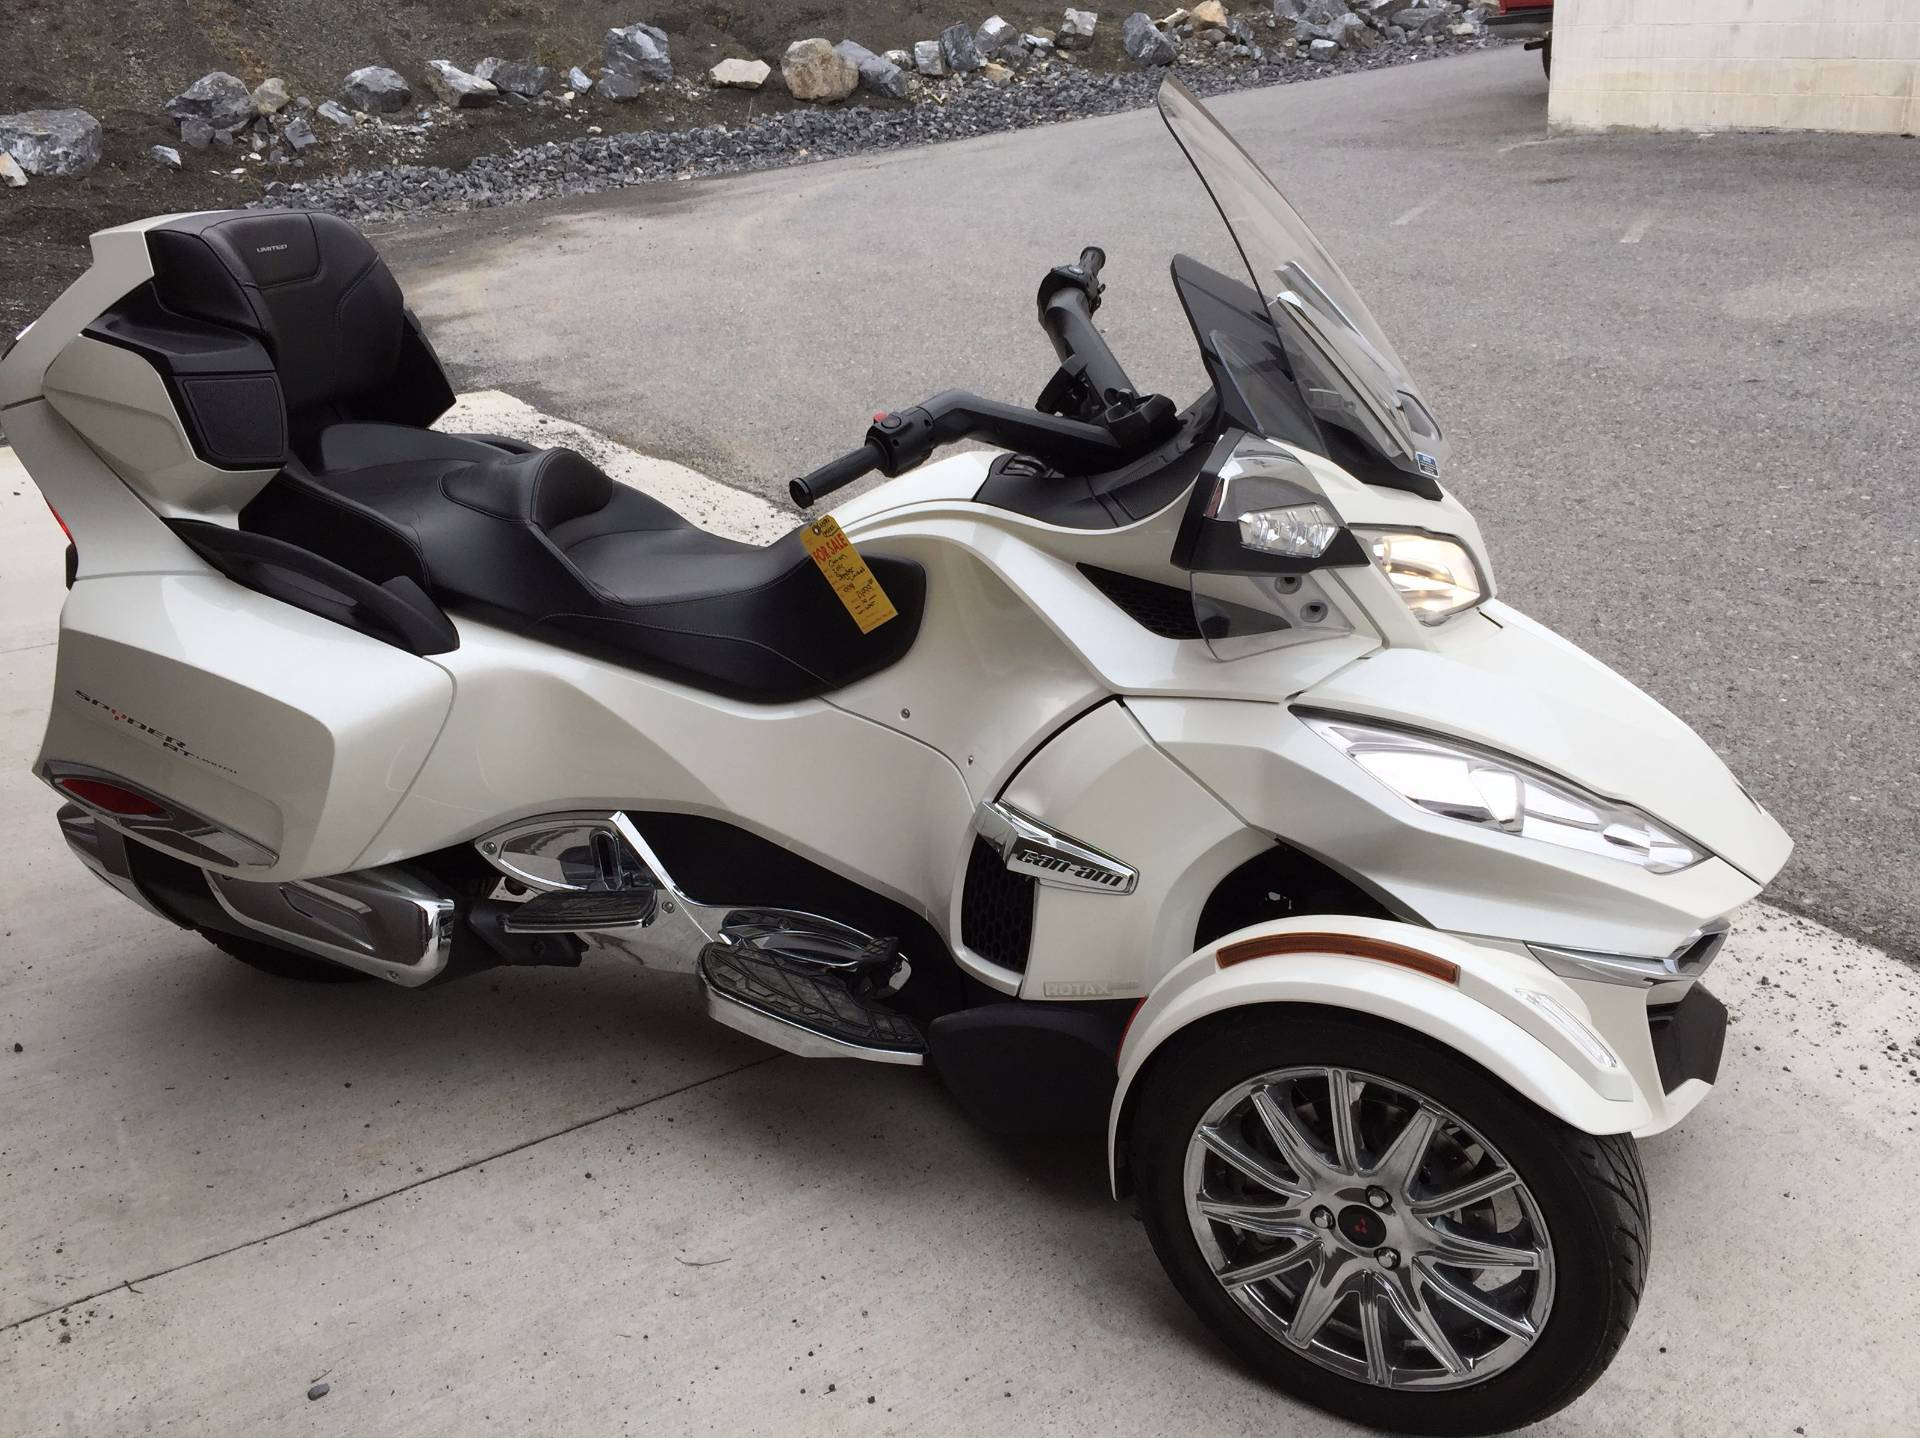 2014 can am spyder rt limited reviews prices and specs holidays oo. Black Bedroom Furniture Sets. Home Design Ideas